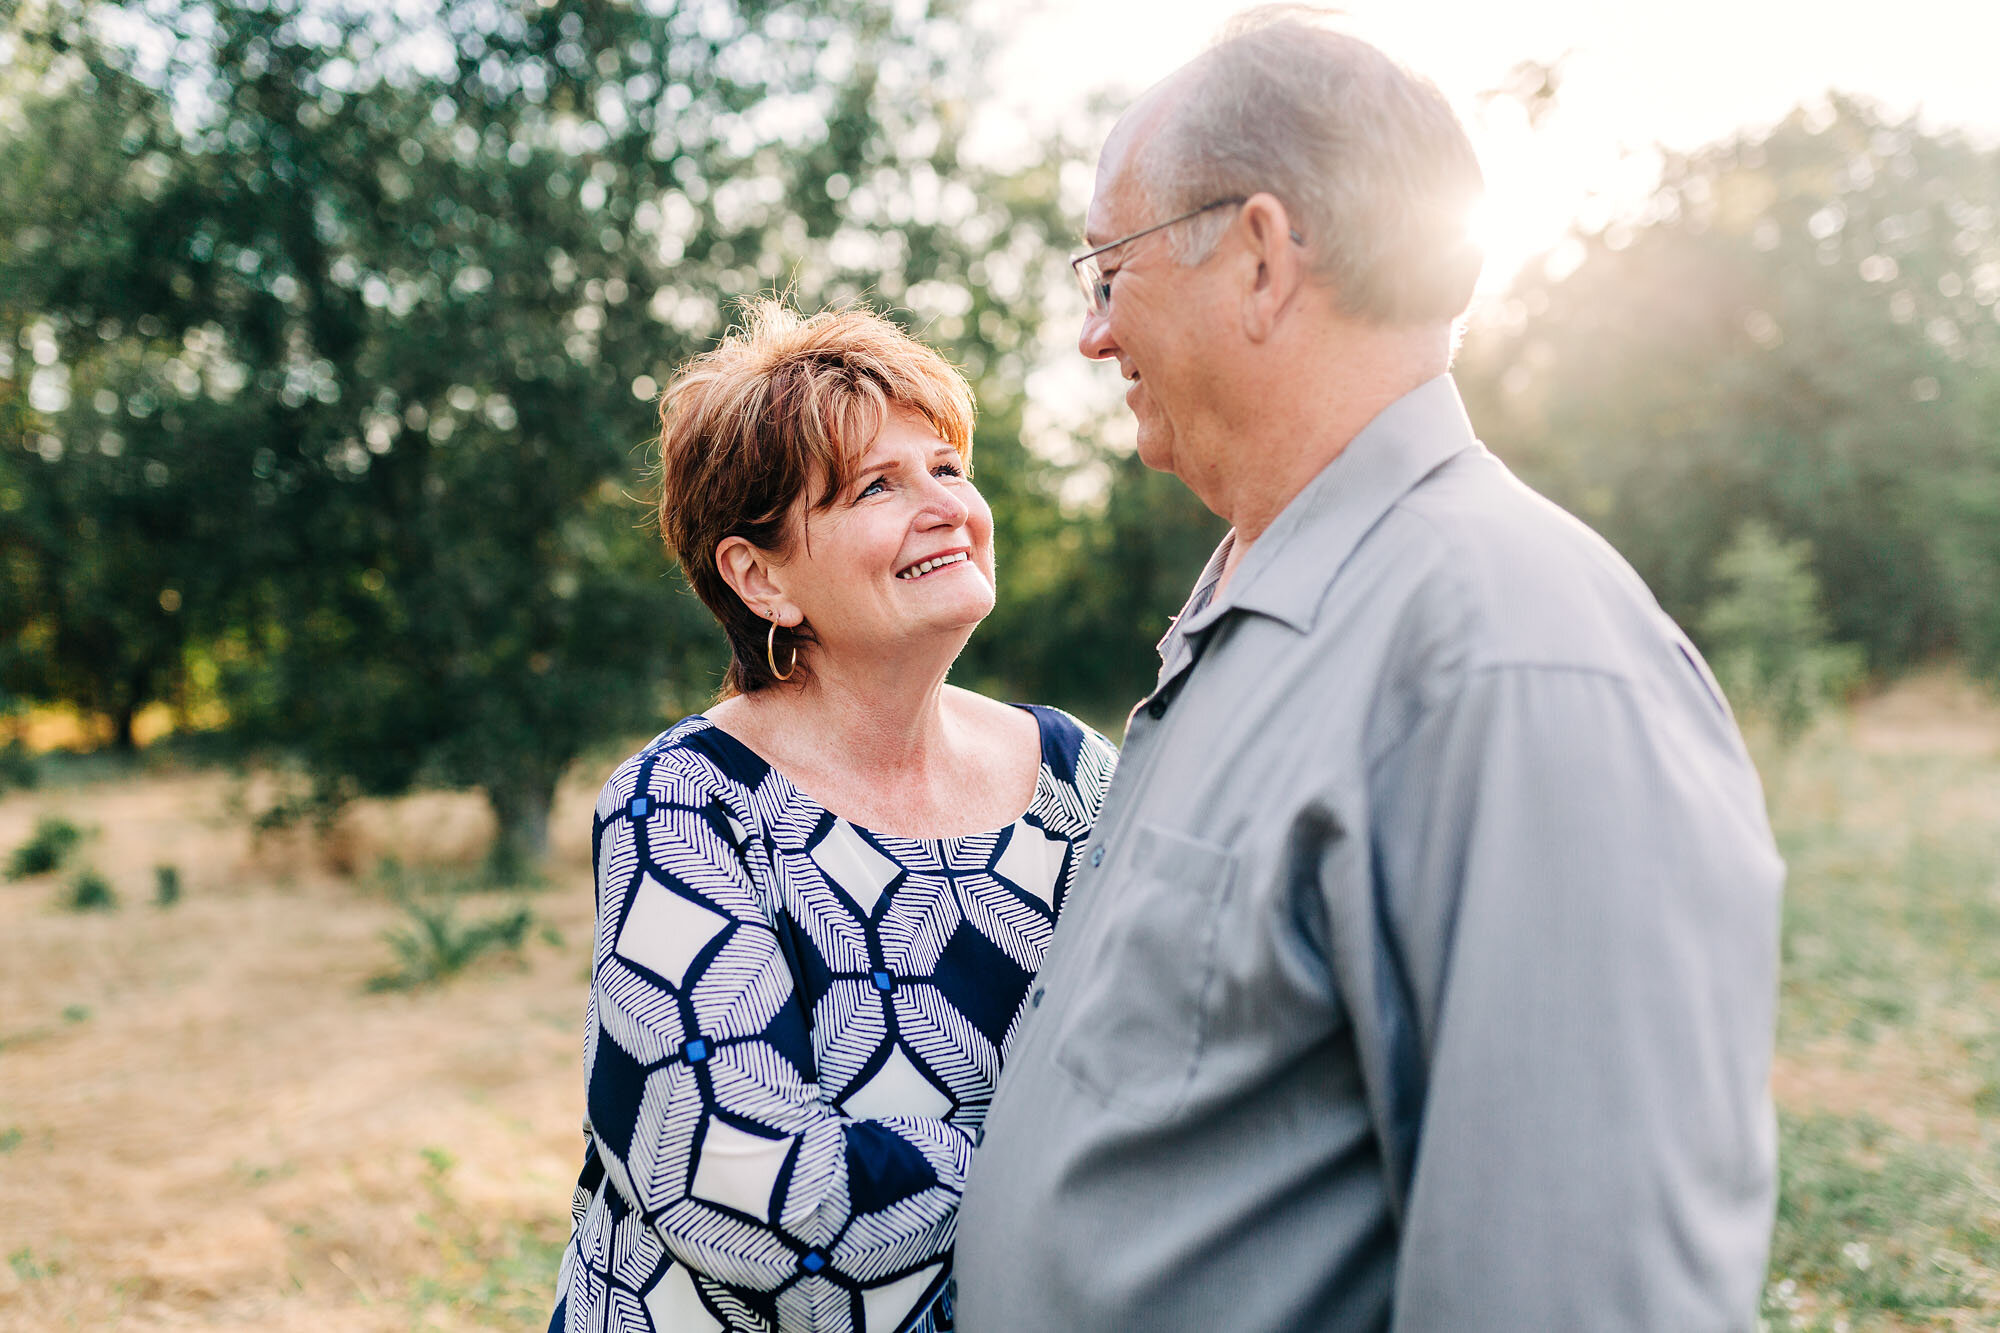 Grandparents get their portrait taken during an extended family photo session with lifestyle photographer Amy Wright in Roseville, California.